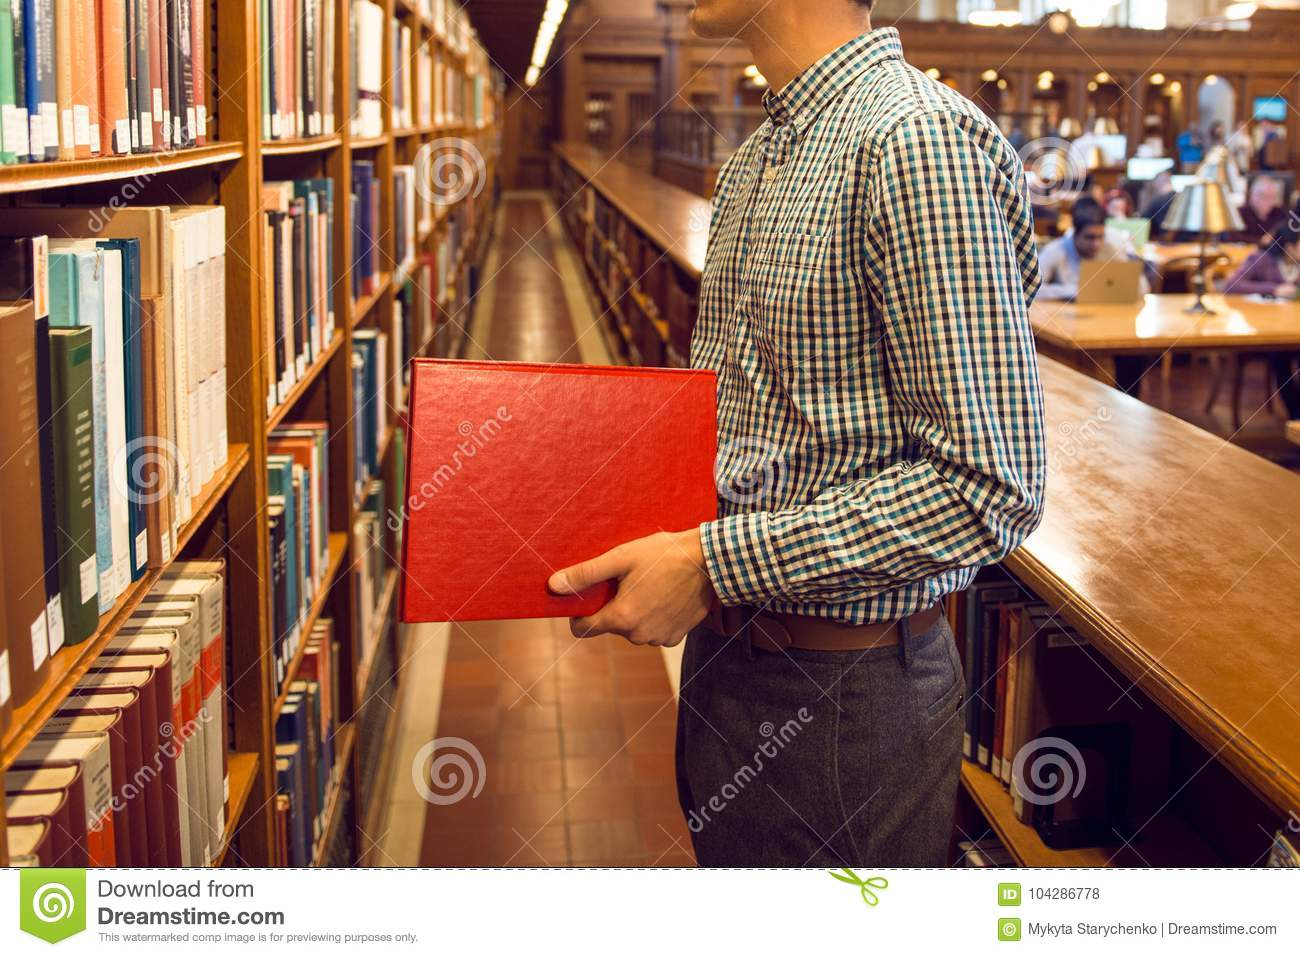 Student Man Taking The Book From Bookshelf In Public Library And Going To Read Download Preview